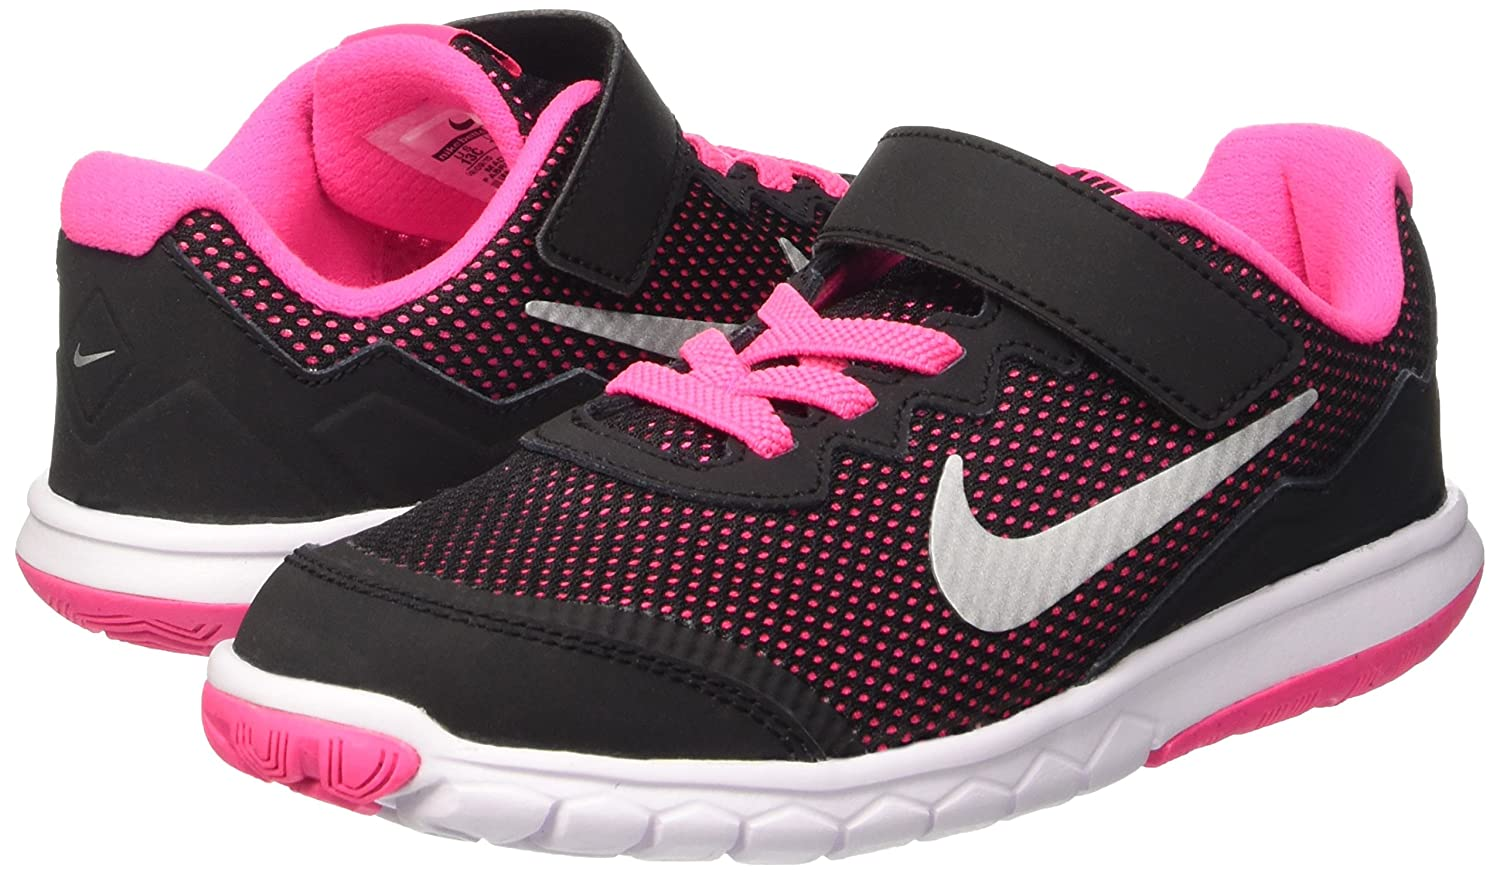 4496a8240cb3c Nike Girls Preschool Flex Experience 4 Running Shoes 749820-001 Blk Pink 3  Little Kid M  Buy Online at Low Prices in India - Amazon.in